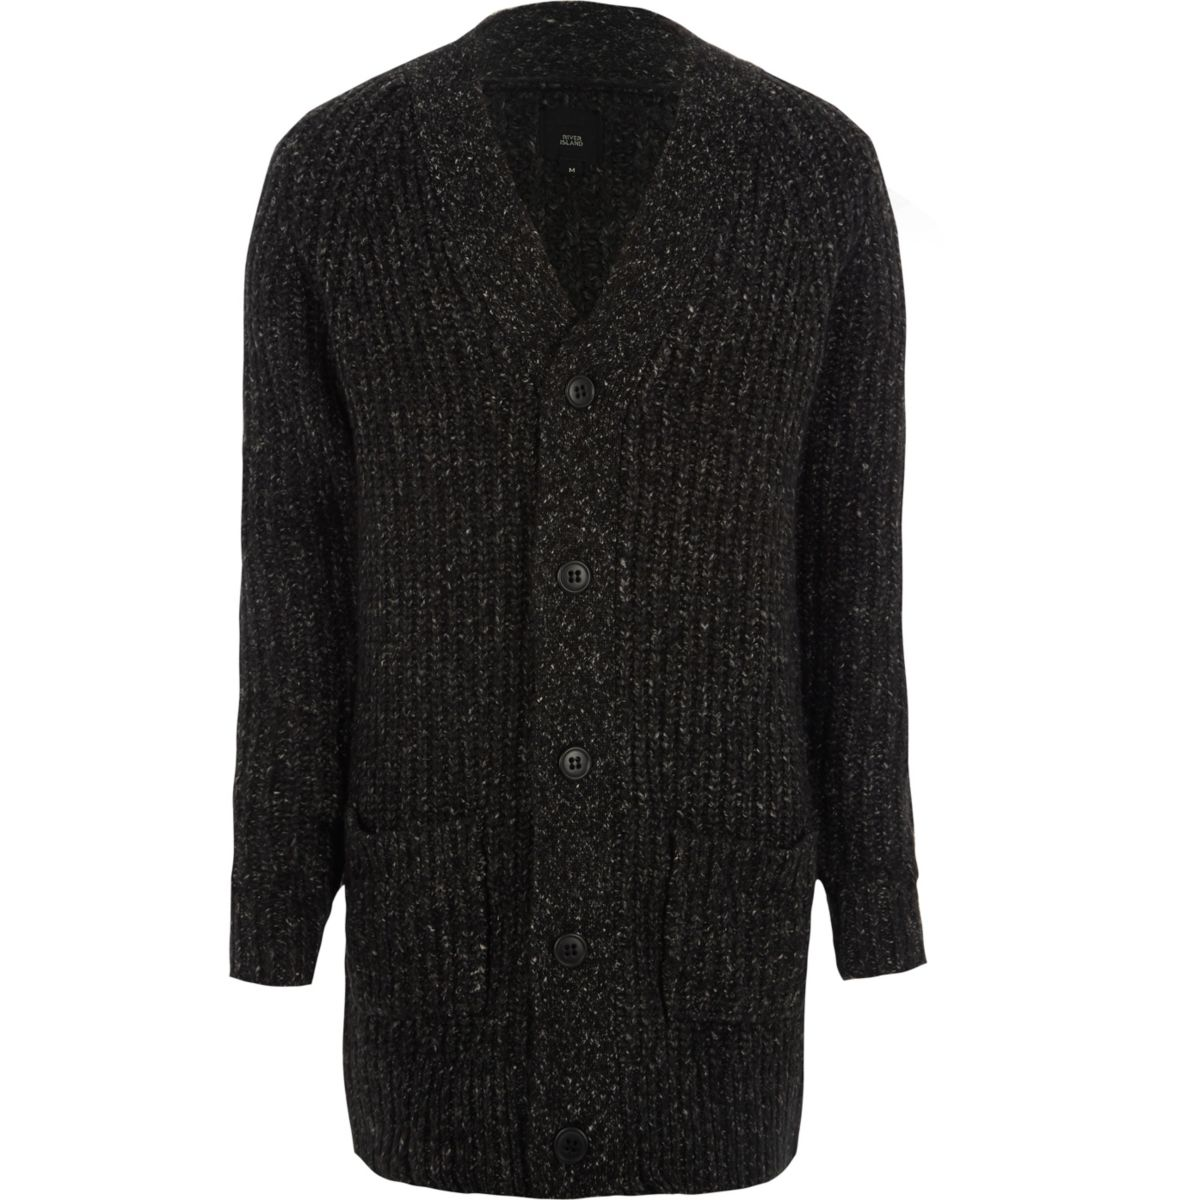 Black long sleeve longline knit cardigan